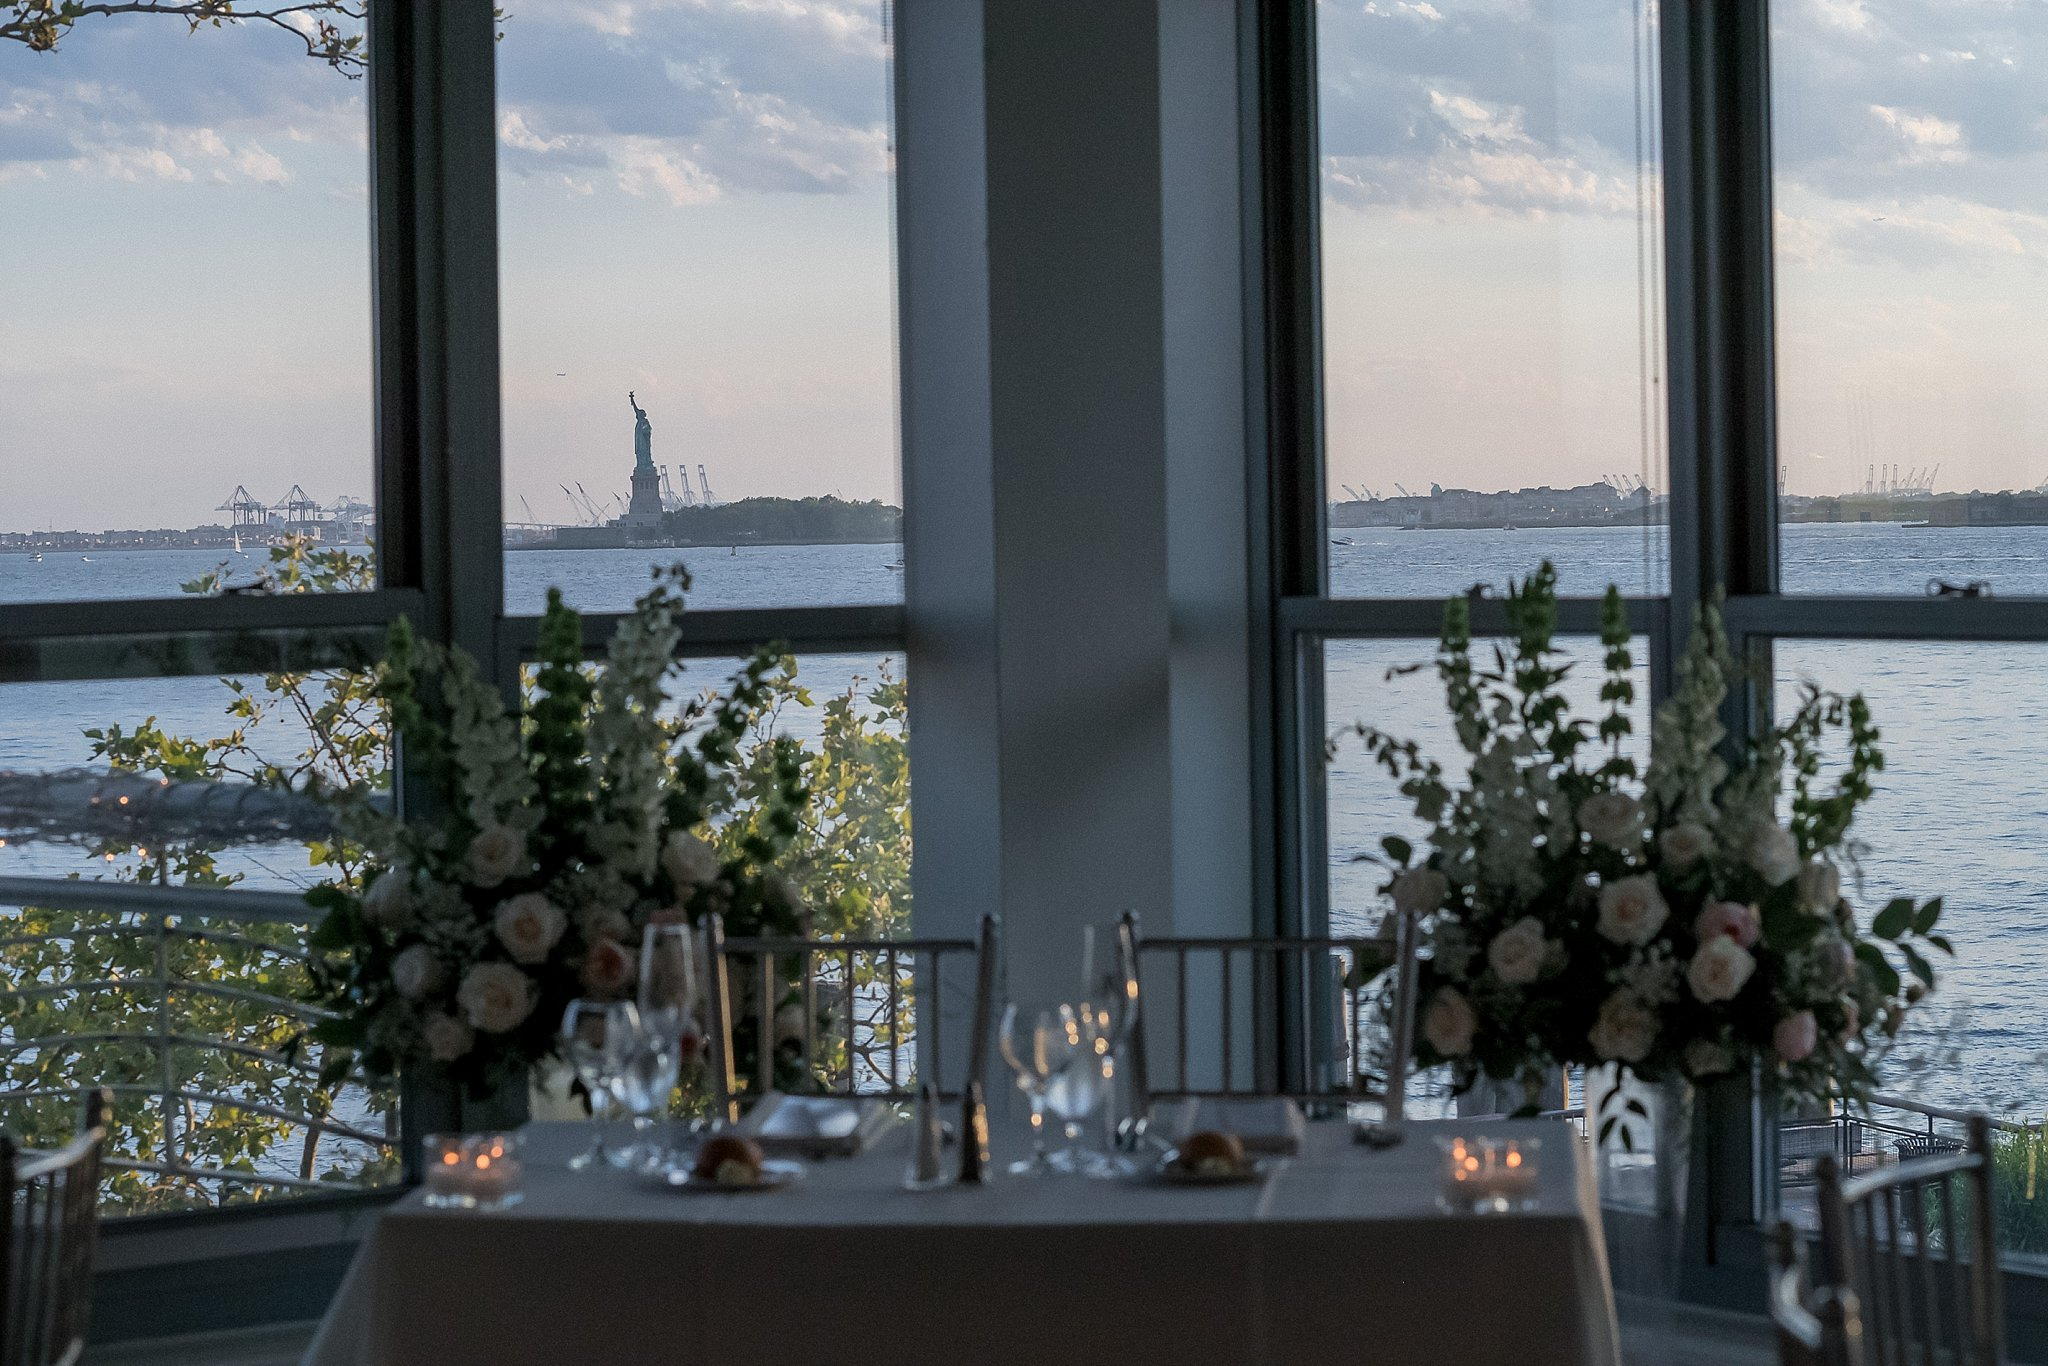 View of a Wedding Reception at Battery Garden photographed by Susan Shek Wedding Photography in New York City, NY.